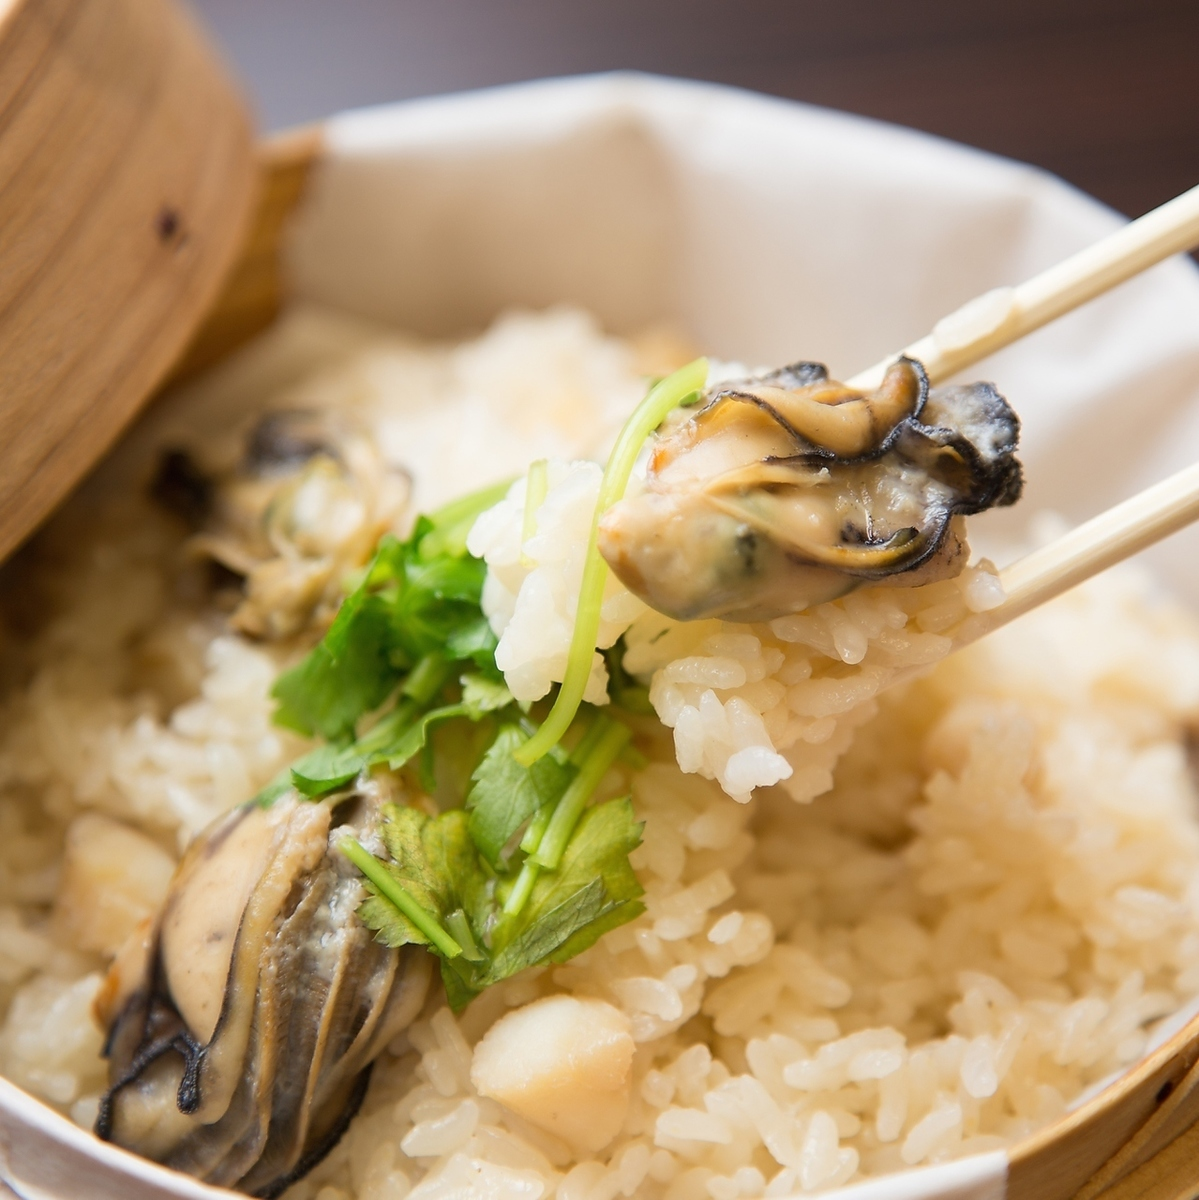 Steamed rice with oysters and scallops